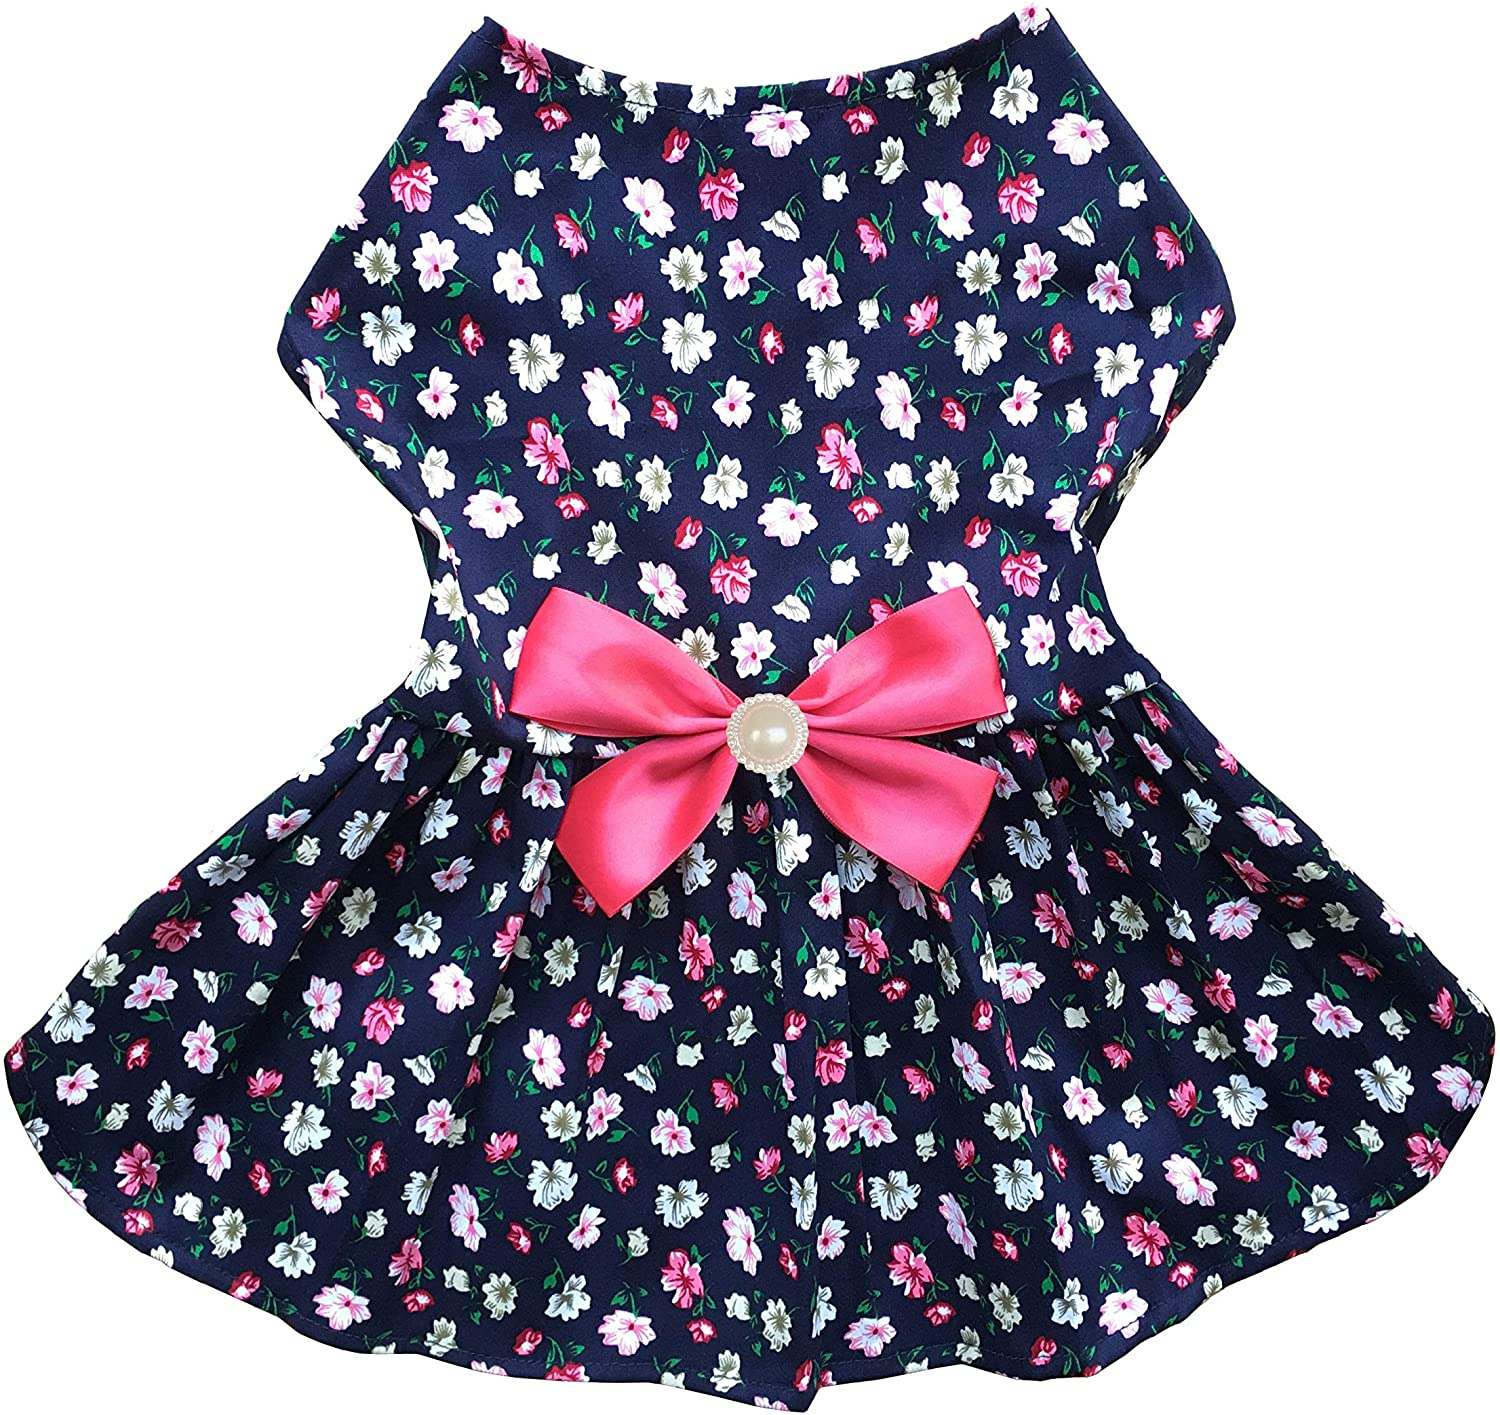 Petroom Puppy Dog Dress,Thin Cute Floral Princess Ribbon Skirt for Small Dogs Cats for Summer